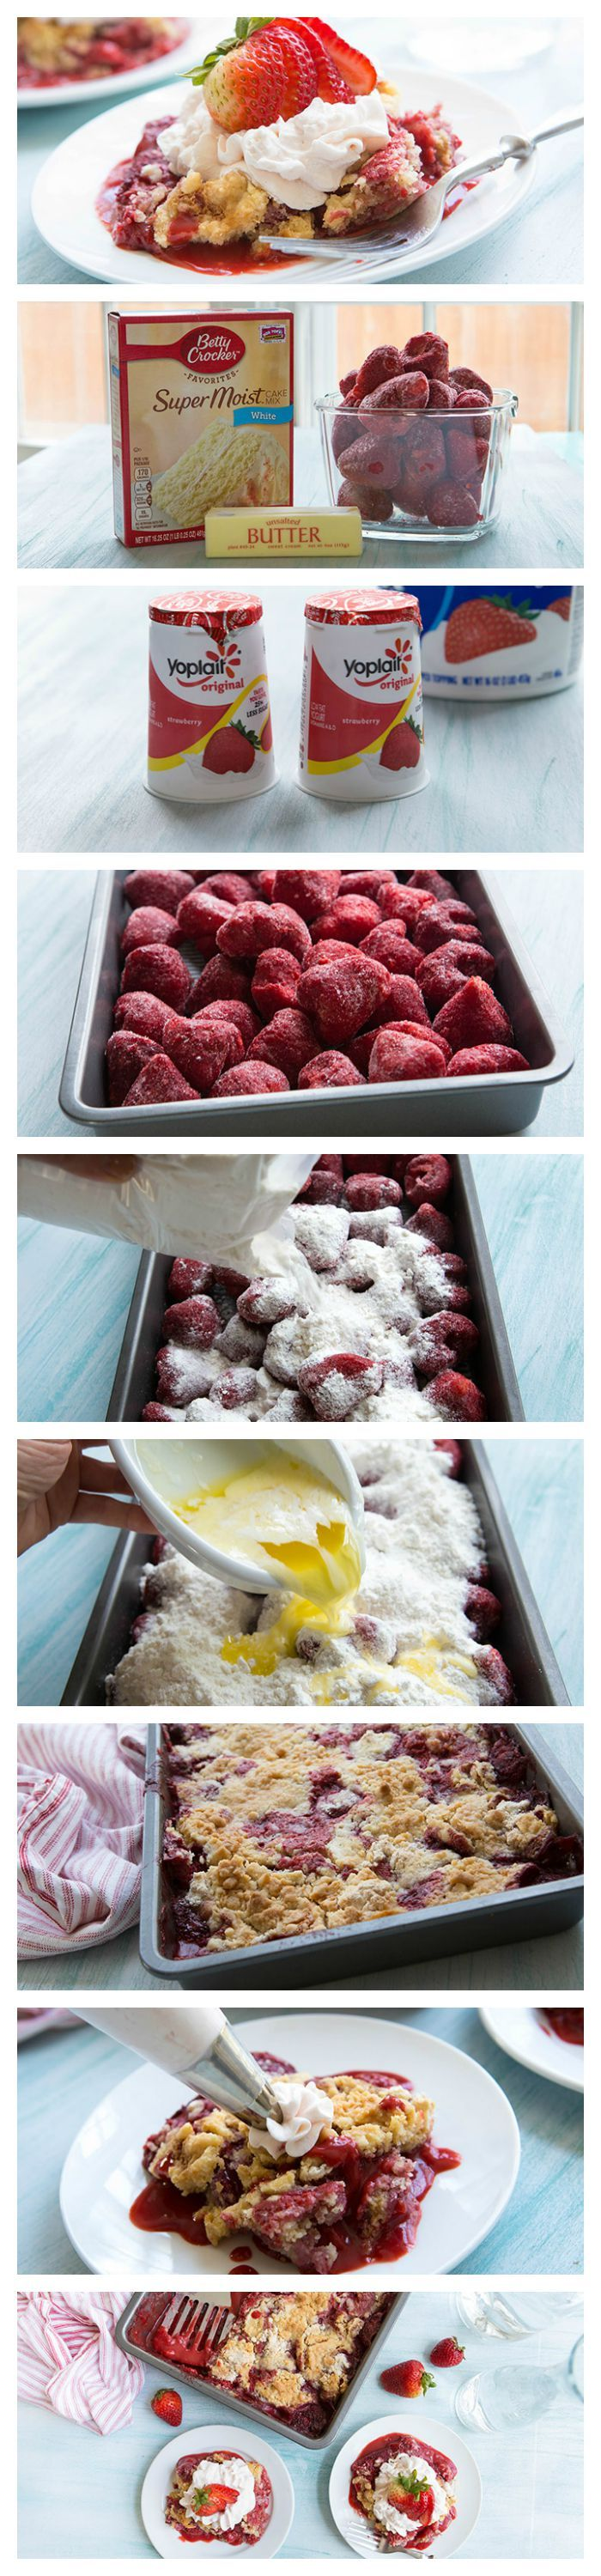 Tangy strawberries are baked beneath a crunchy, buttery layer of vanilla cake mix, and then topped with a strawberry yogurt whipped topping in this quick-and-easy cobbler style cake.